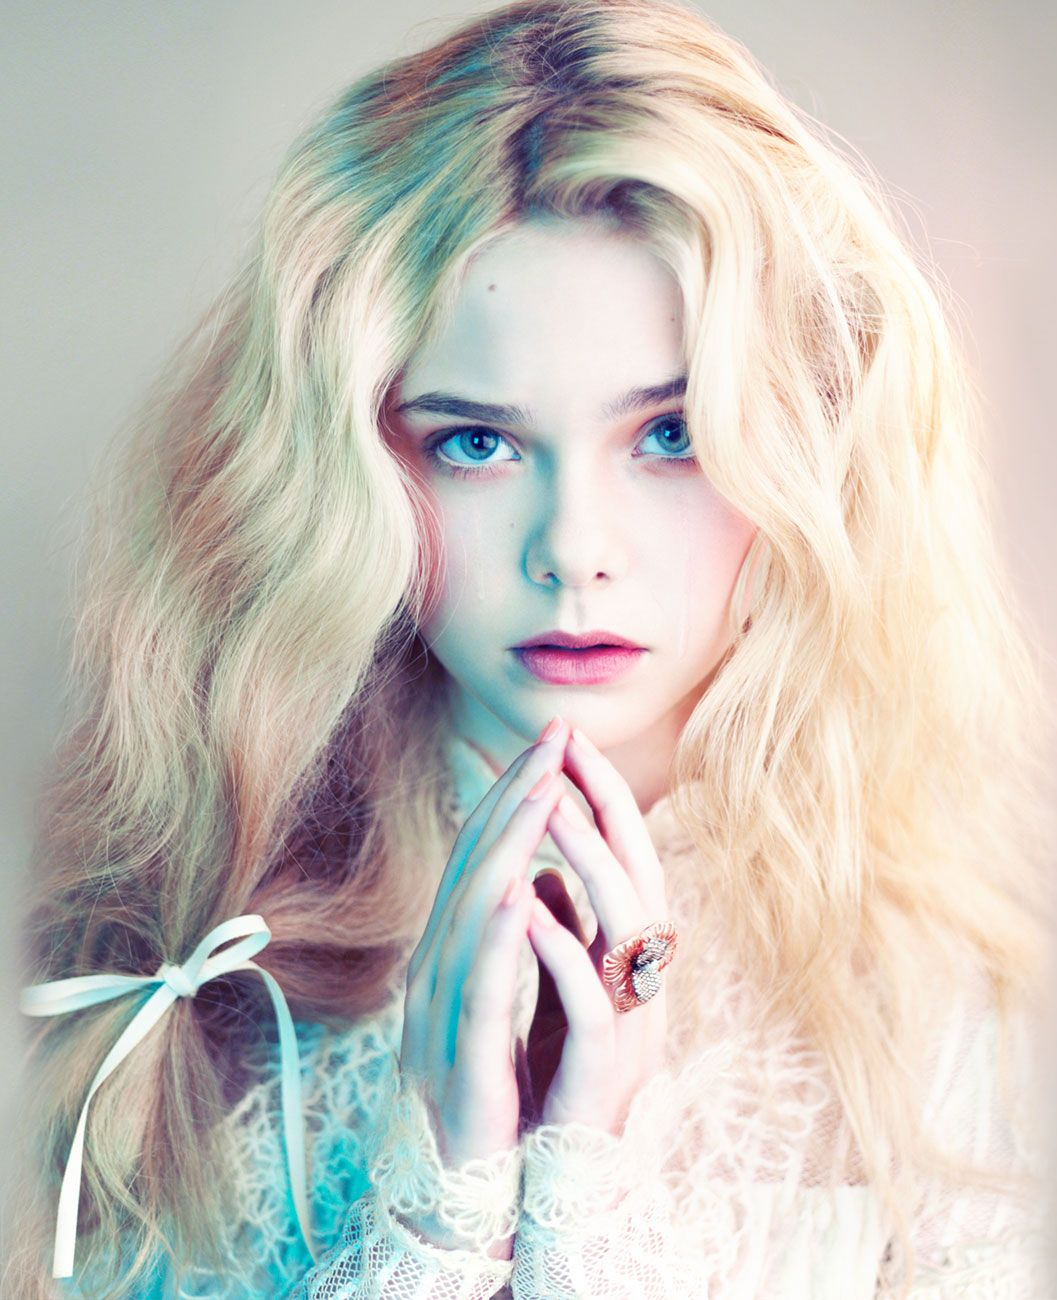 Fc elle fanning hello ium alina scott ium and a bit of a